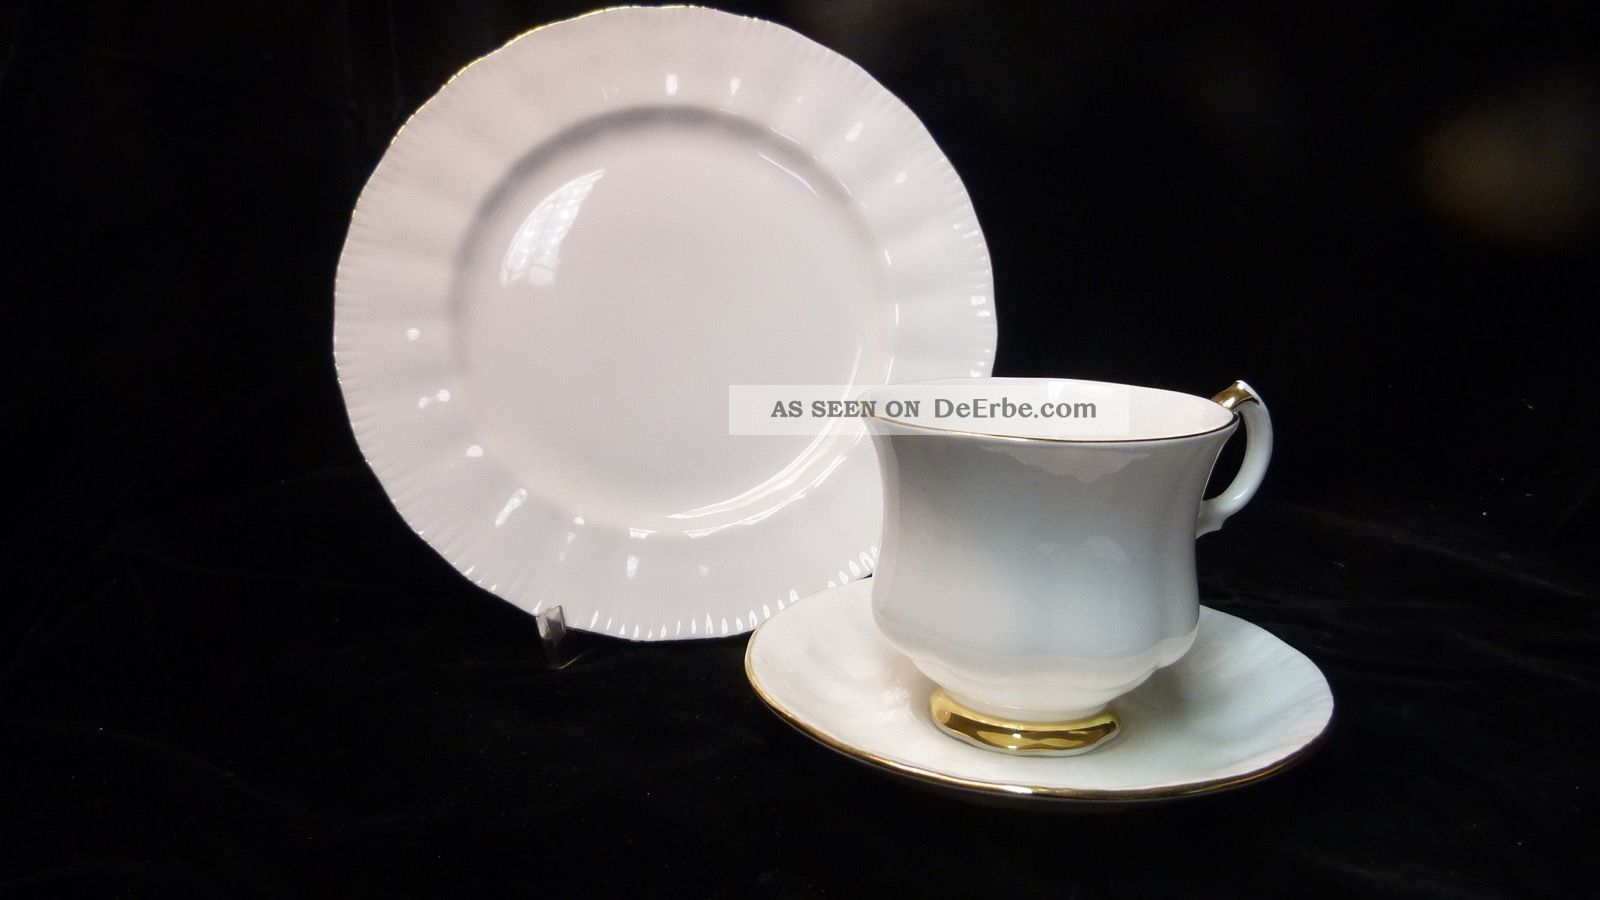 royal knight sammelgedeck bone china porzellan england vintage. Black Bedroom Furniture Sets. Home Design Ideas